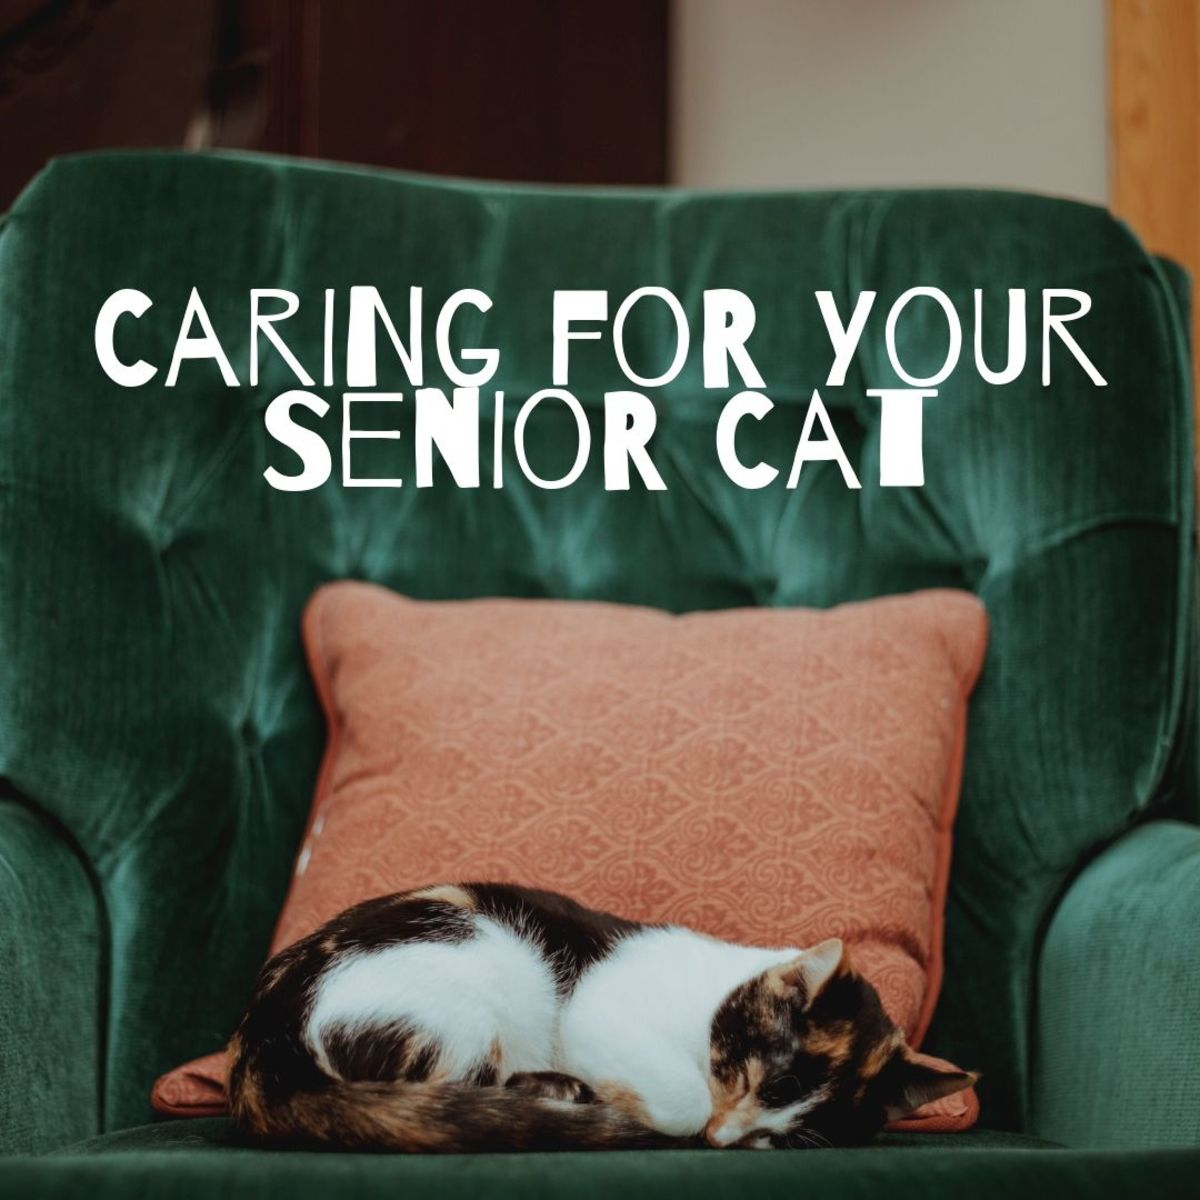 Learn how to improve the quality of life for your senior cat